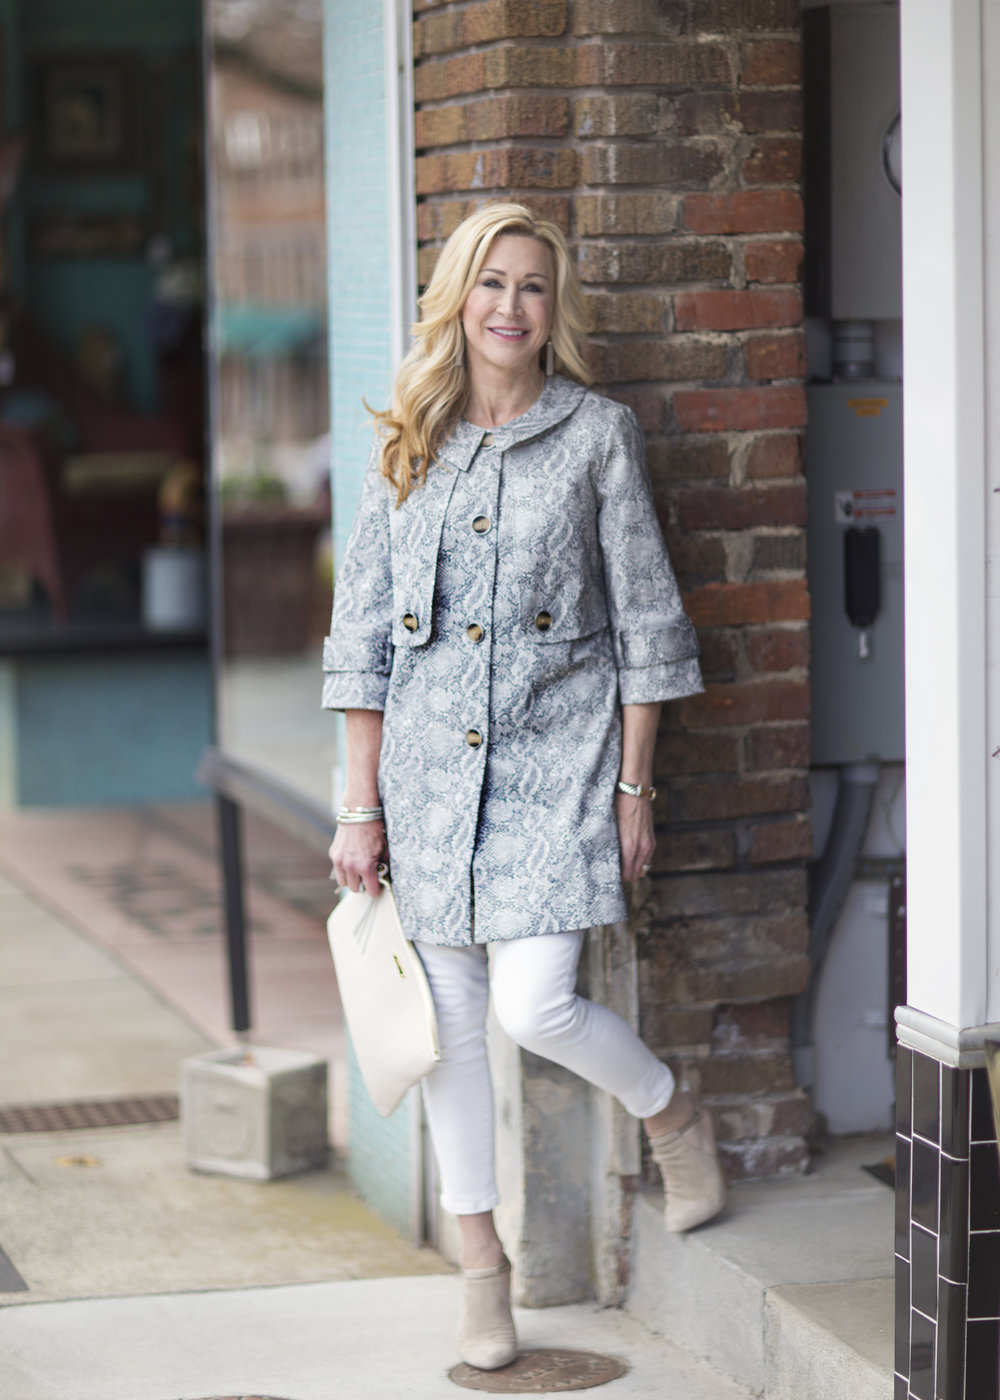 Spring Coat with White Jeans